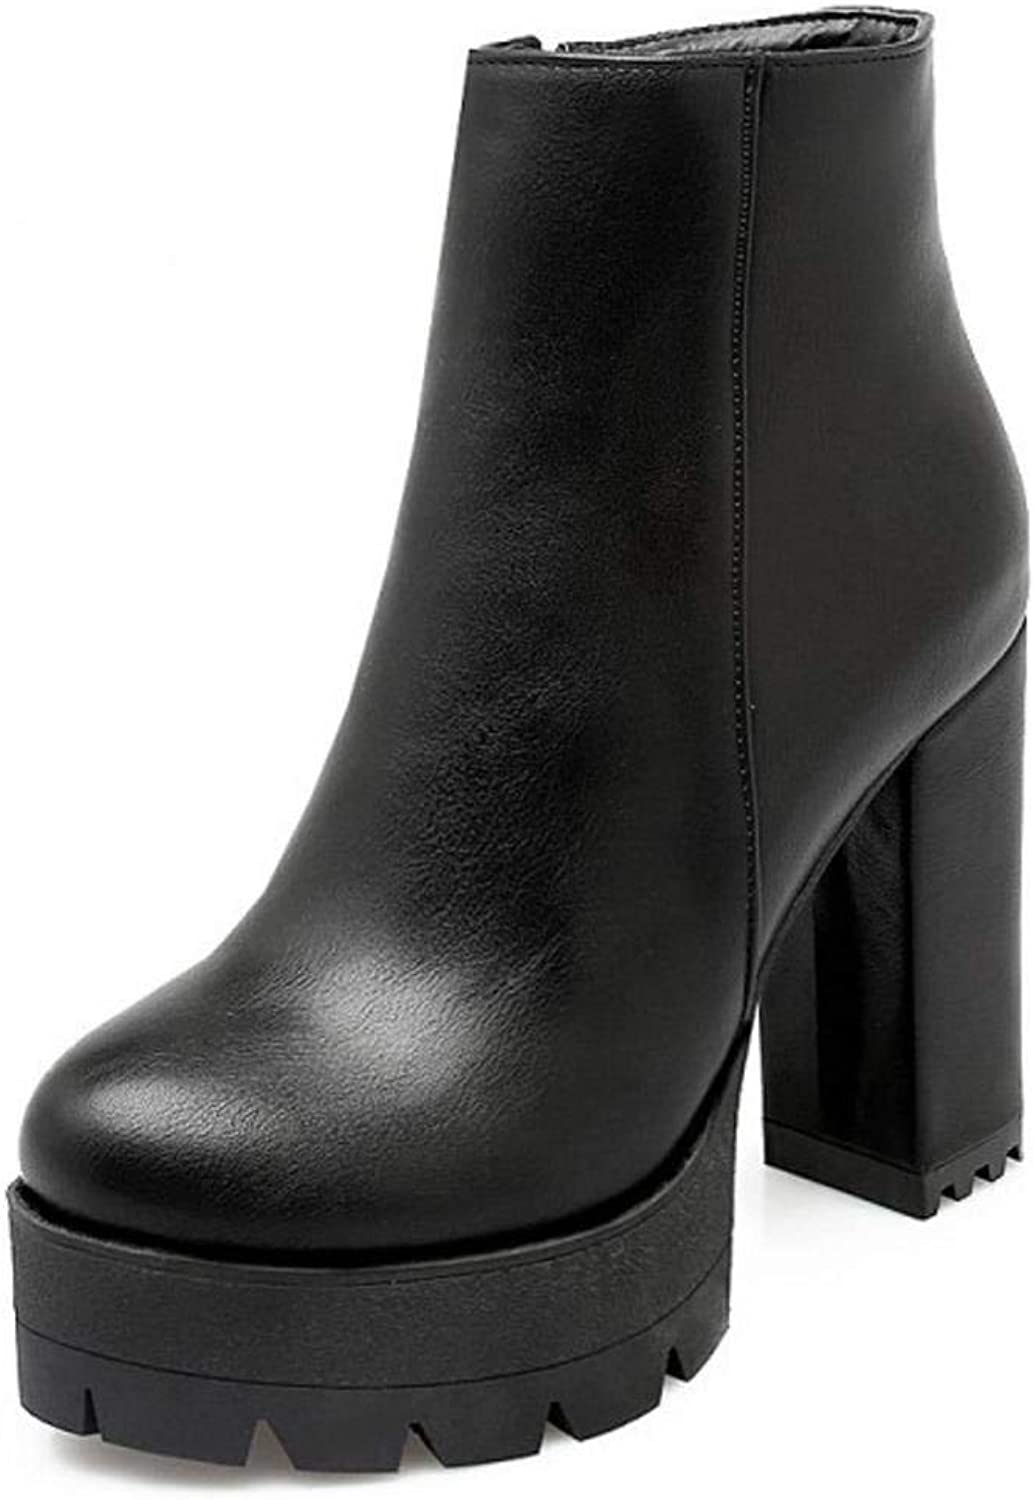 Unm Women Western Boots Chunky Heel High Platform shoes